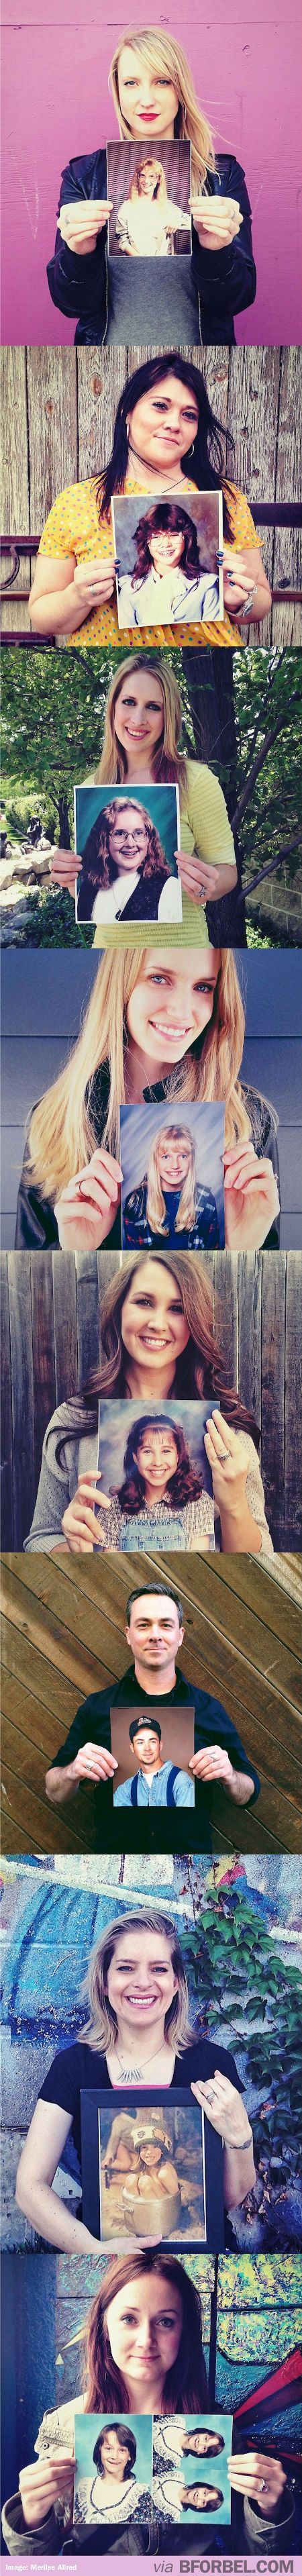 People holding awkward, teen pictures of themselves. Lesson learnt: don't get bangs